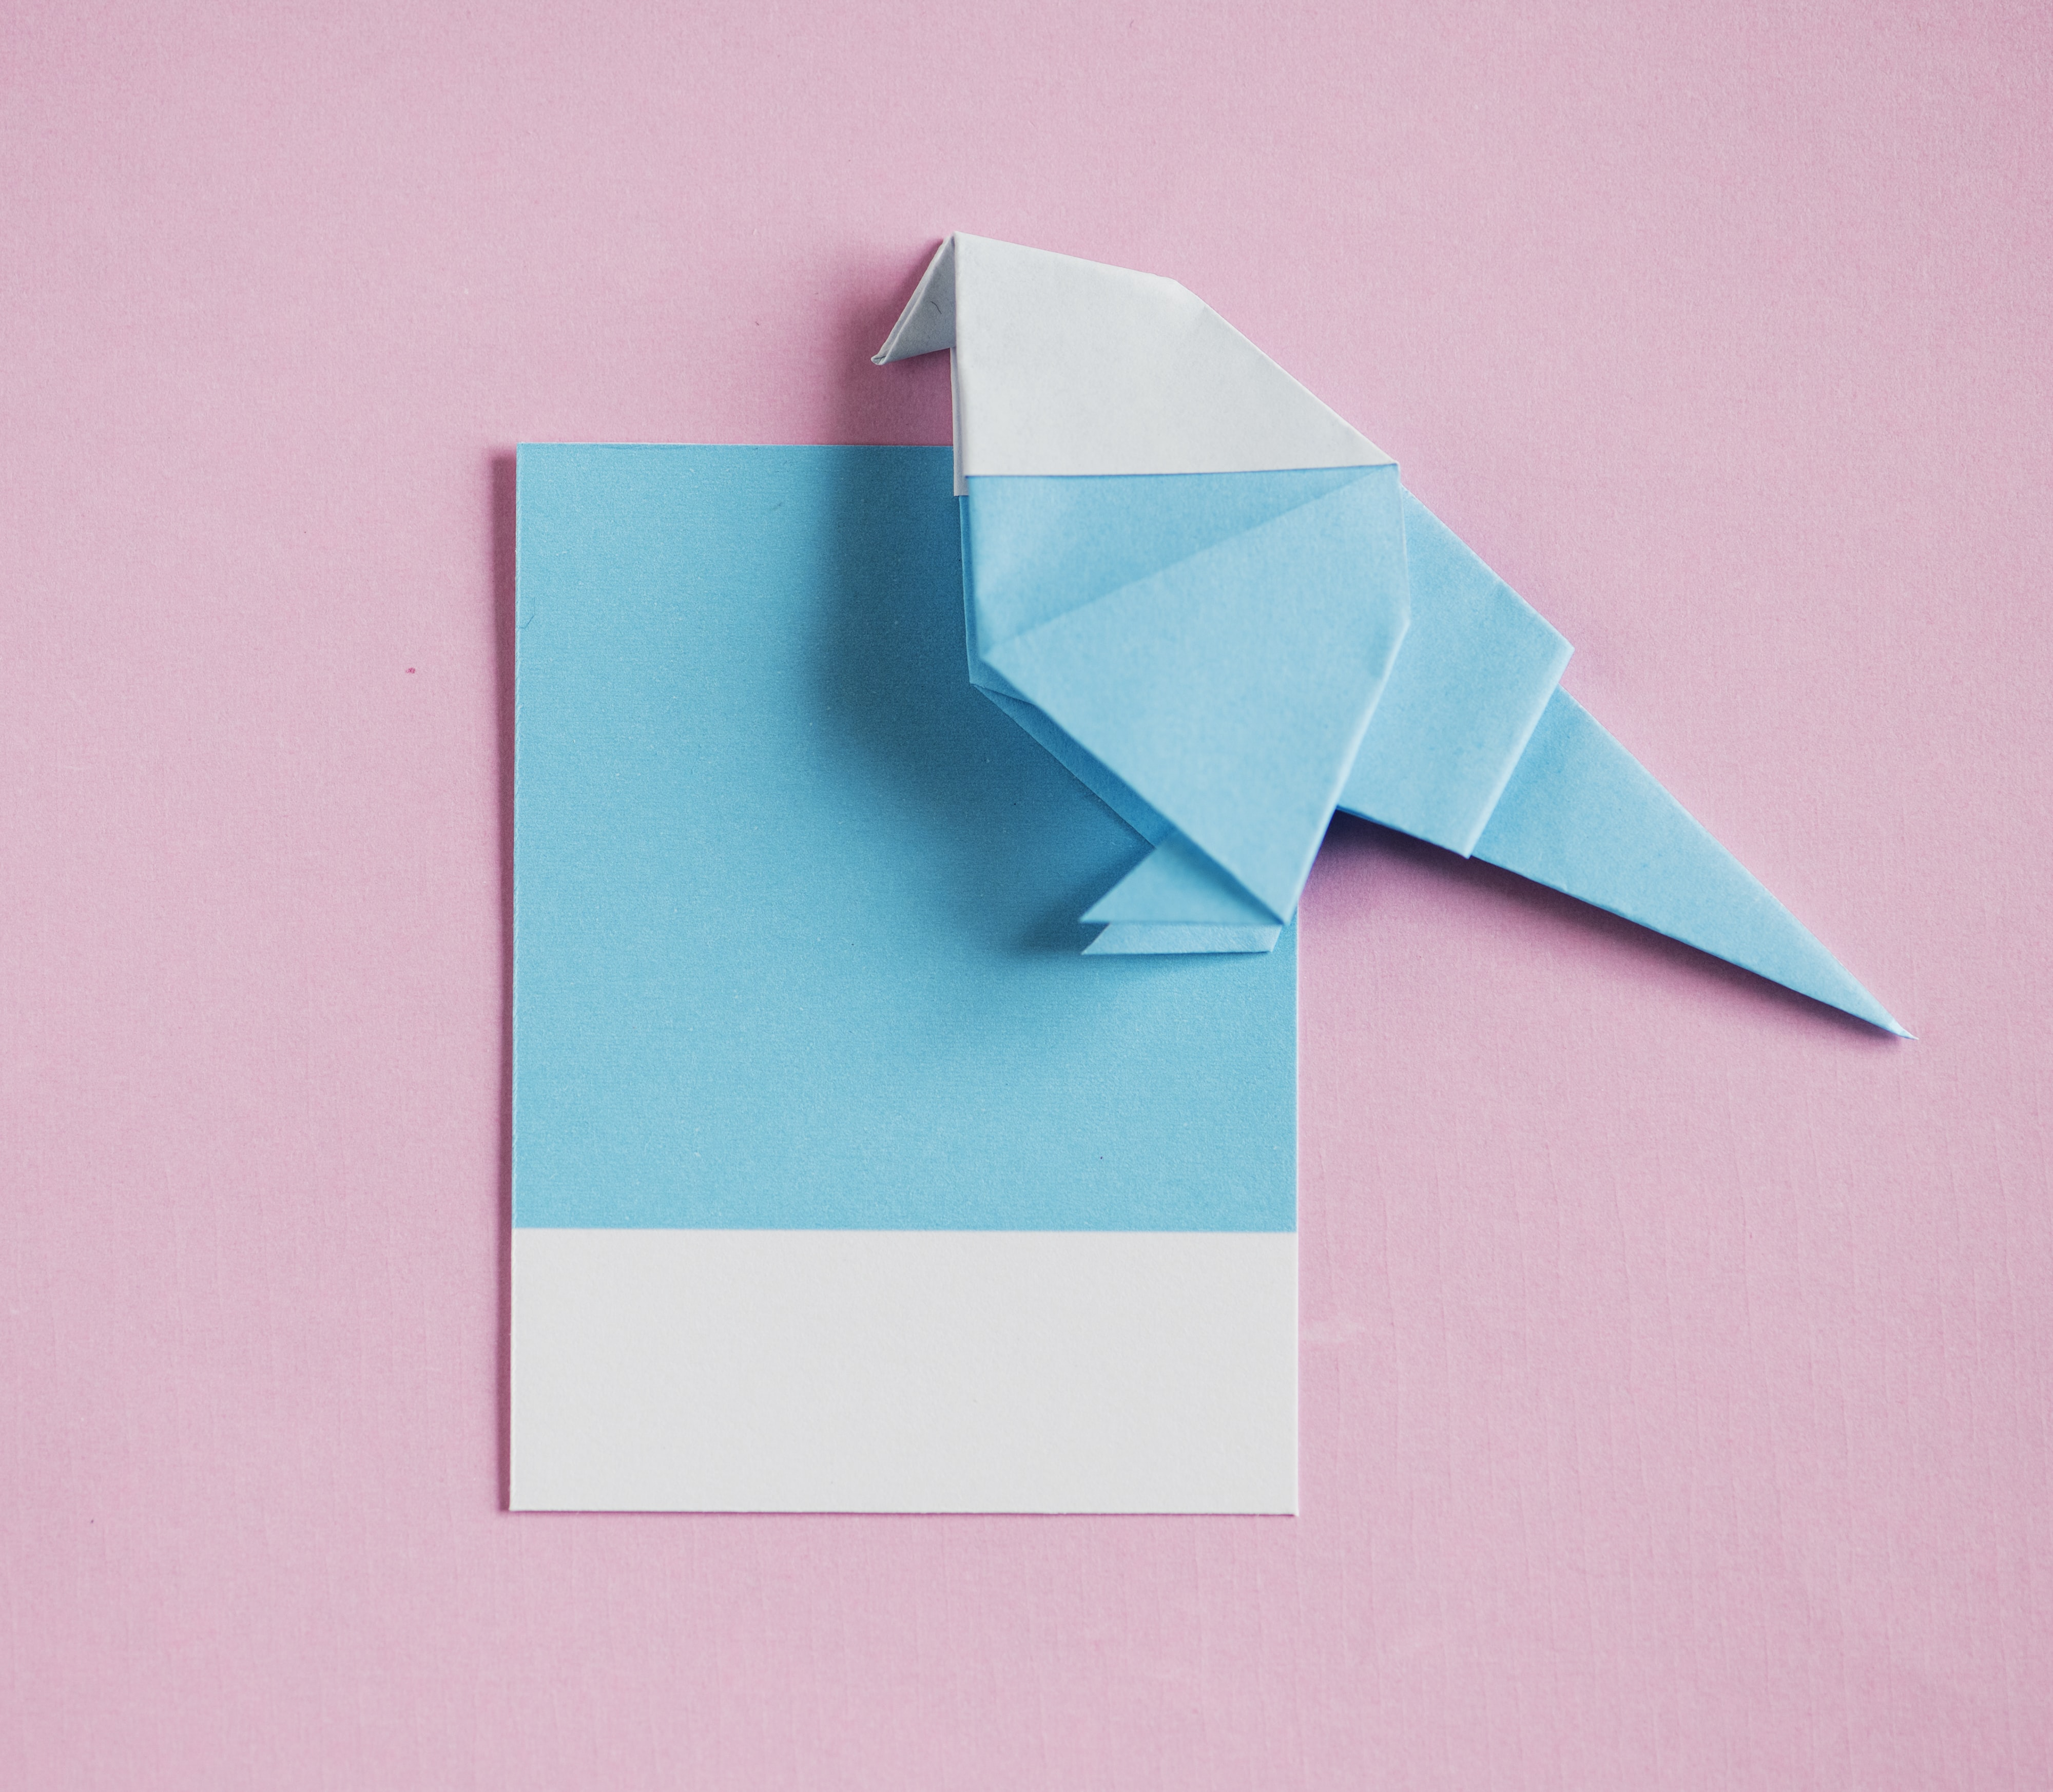 blue-and-white papers on pink surface